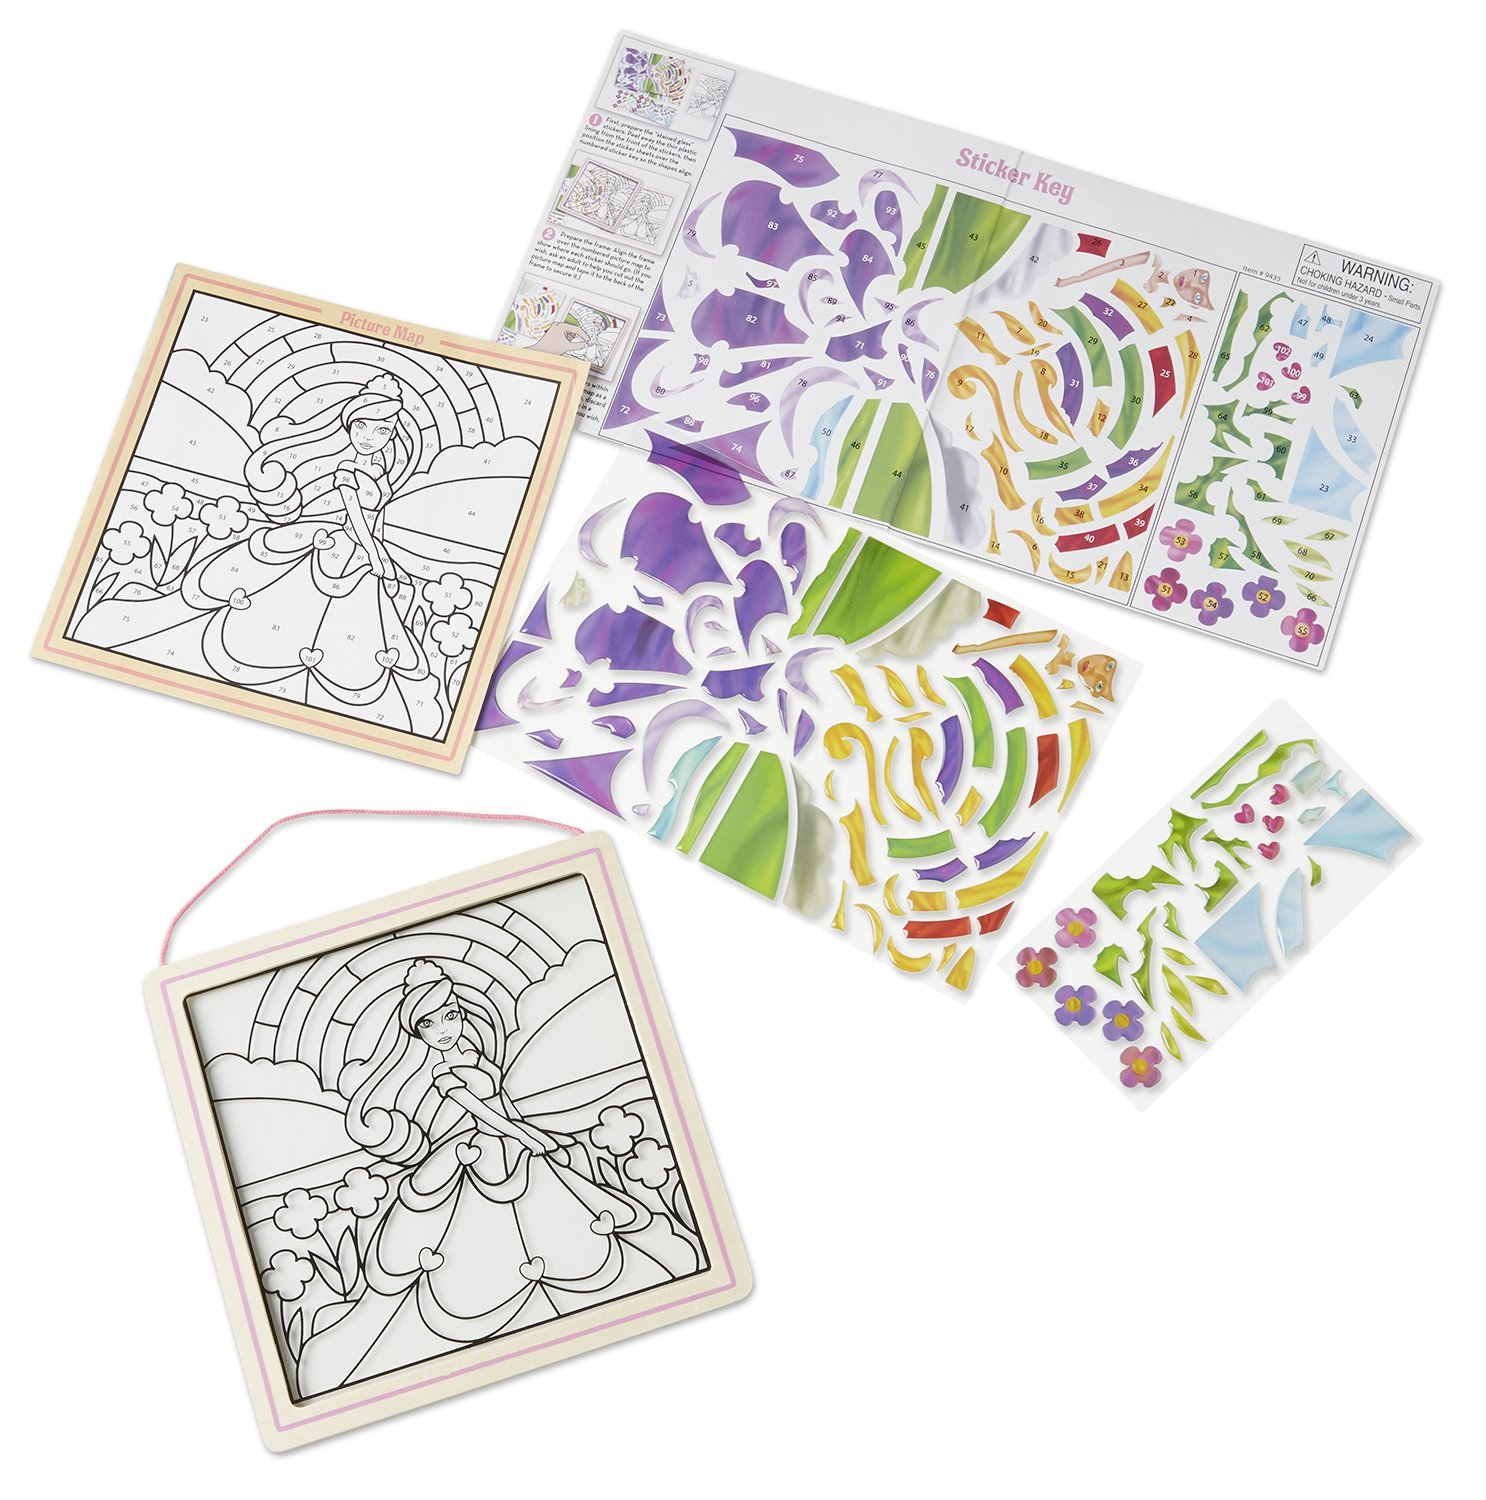 Princess 100 Stickers Wooden Frame Melissa /& Doug Stained Glass Made Easy Activity Kit